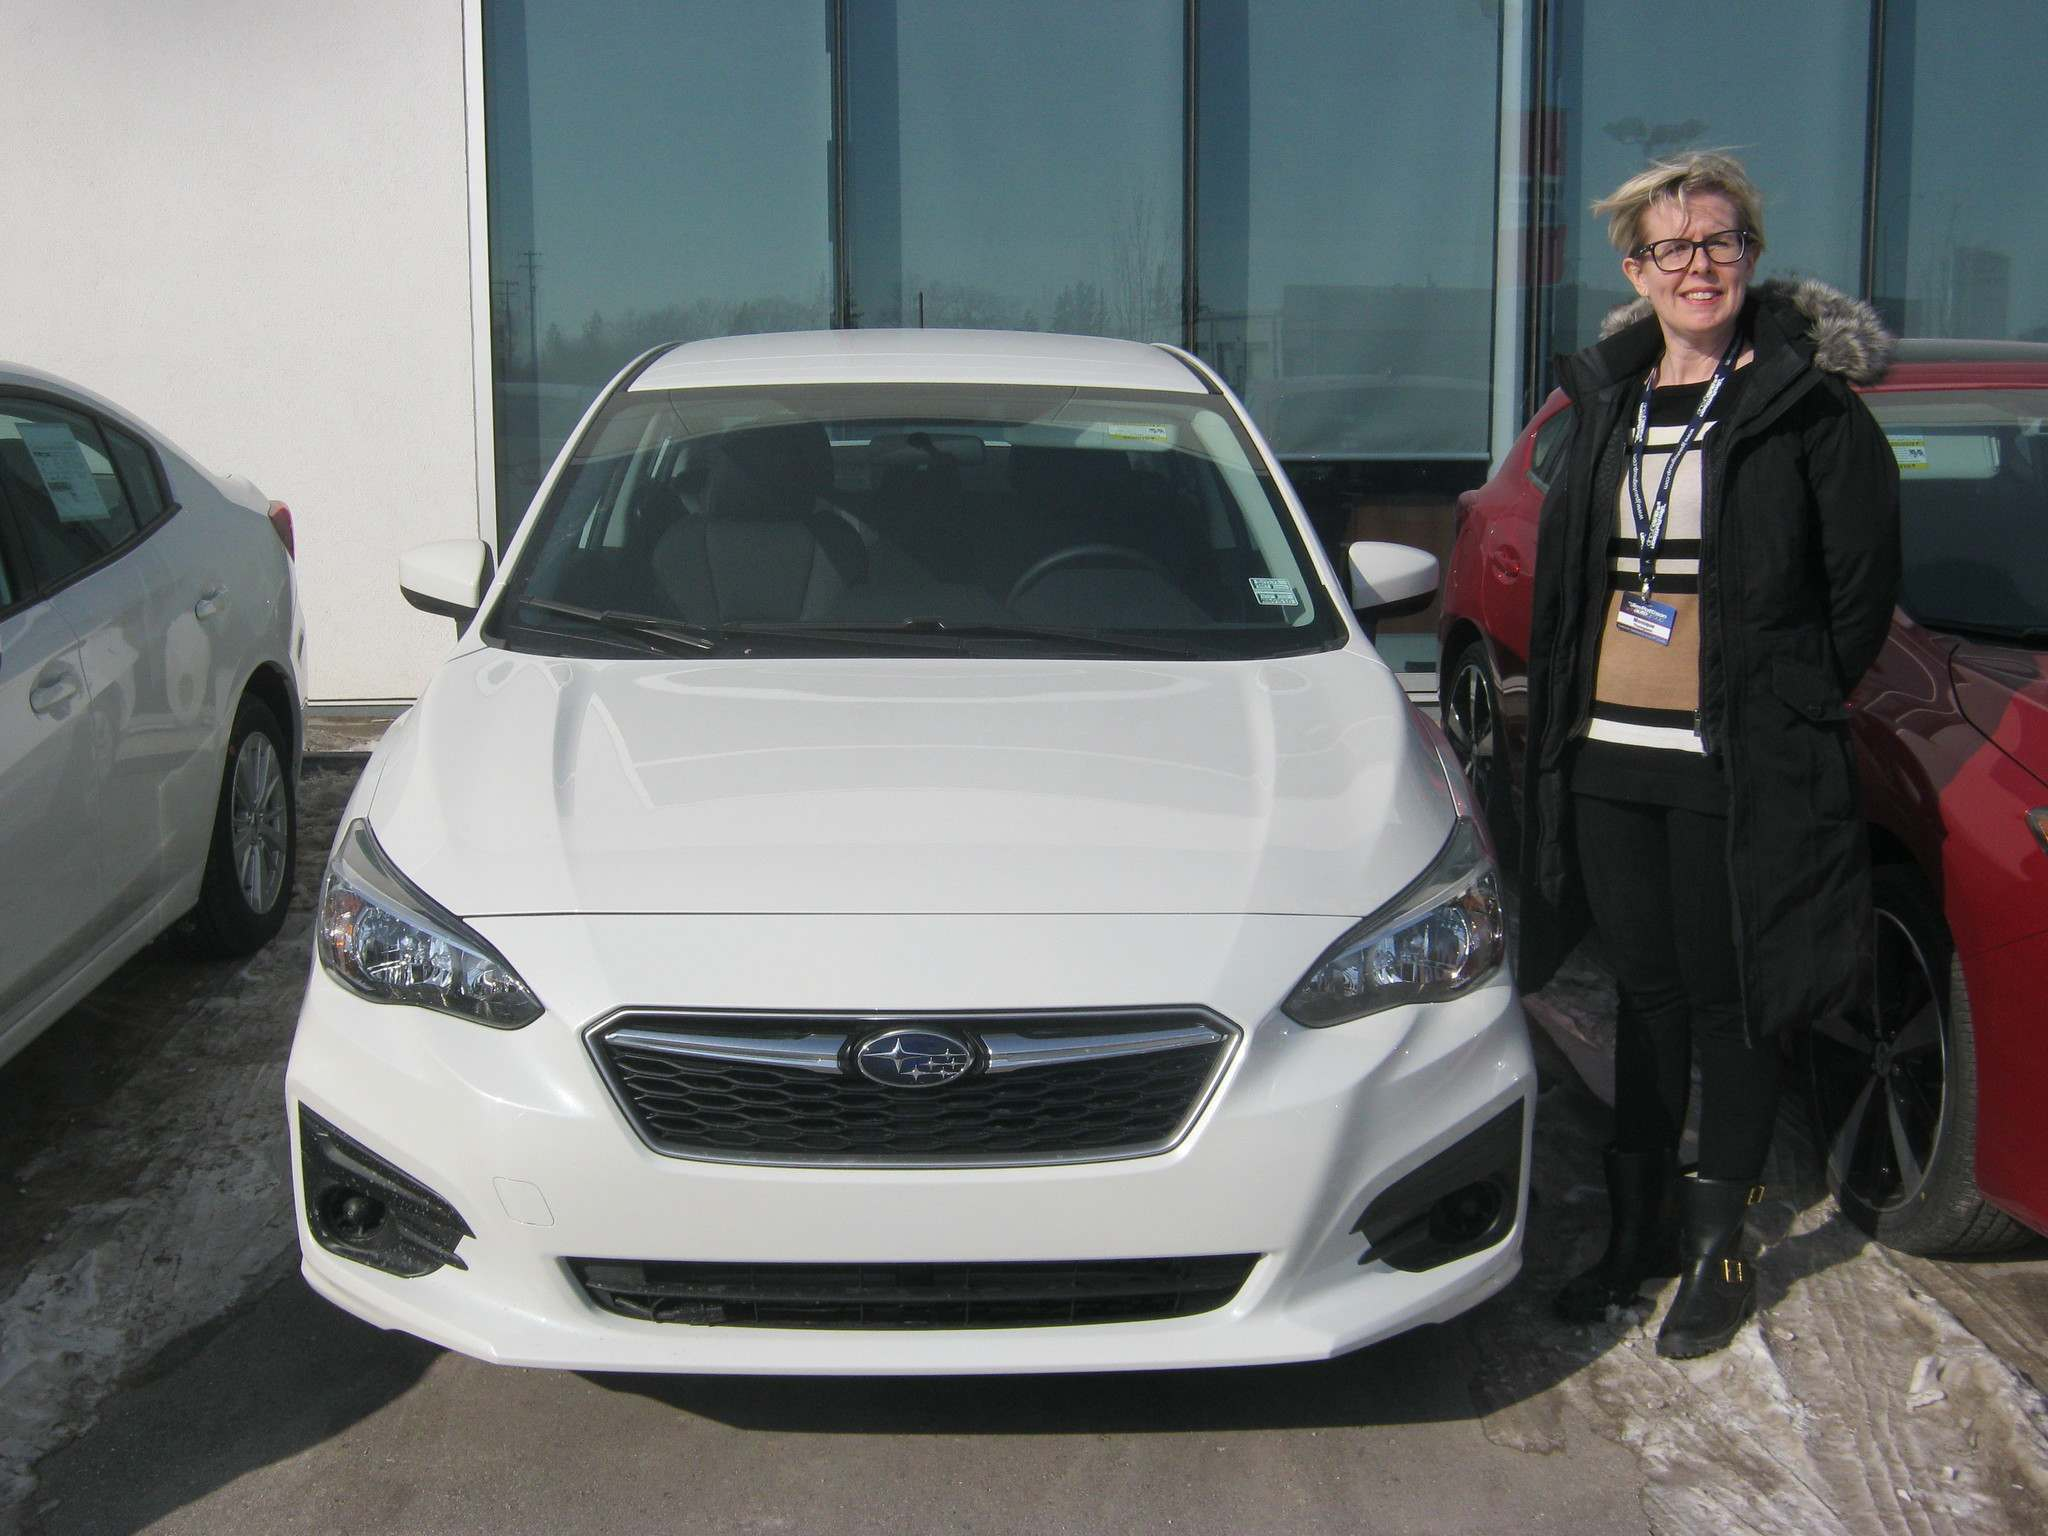 Myron Love / Winnipeg Free PressMonique Thompson, the longest serving Subaru product advisor in the Prairie Provinces, stands by the 2017 Subaru Impreza.